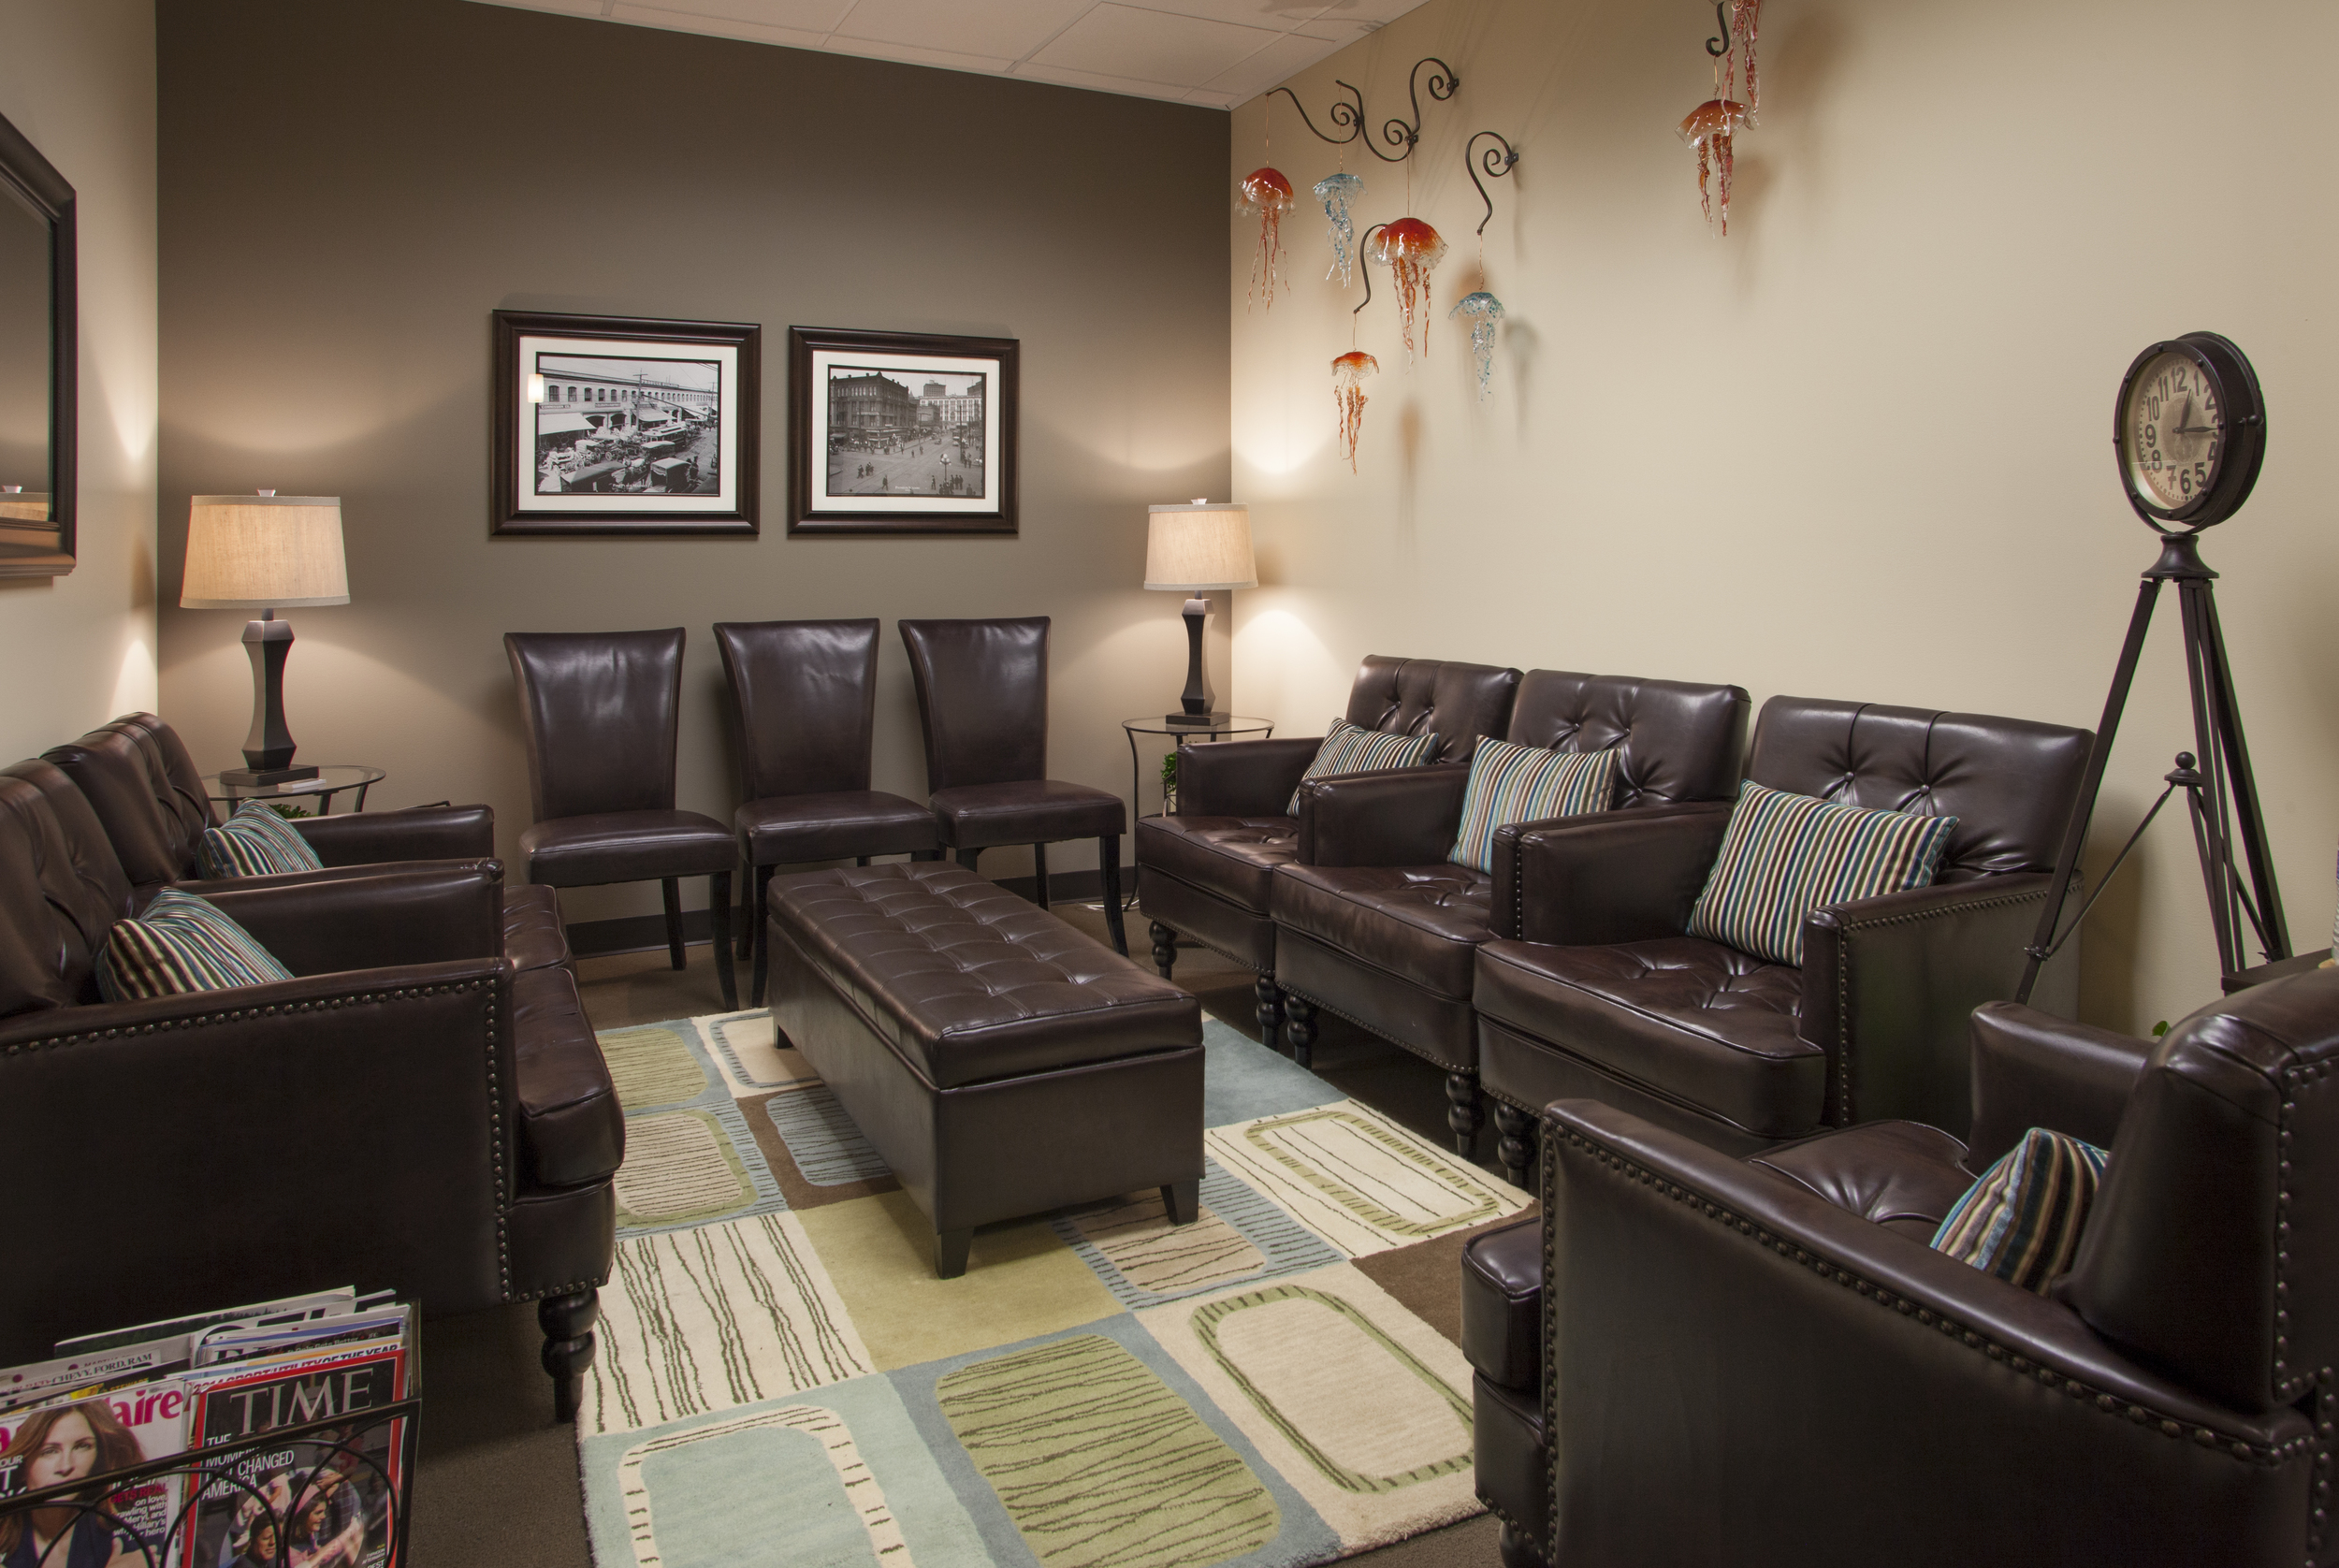 Our unique reception room - one of two areas to wait while we take excellent care of our patients and their caregivers (Dr. Scott Stewart General Family Dentist, Silverdale Dentist)